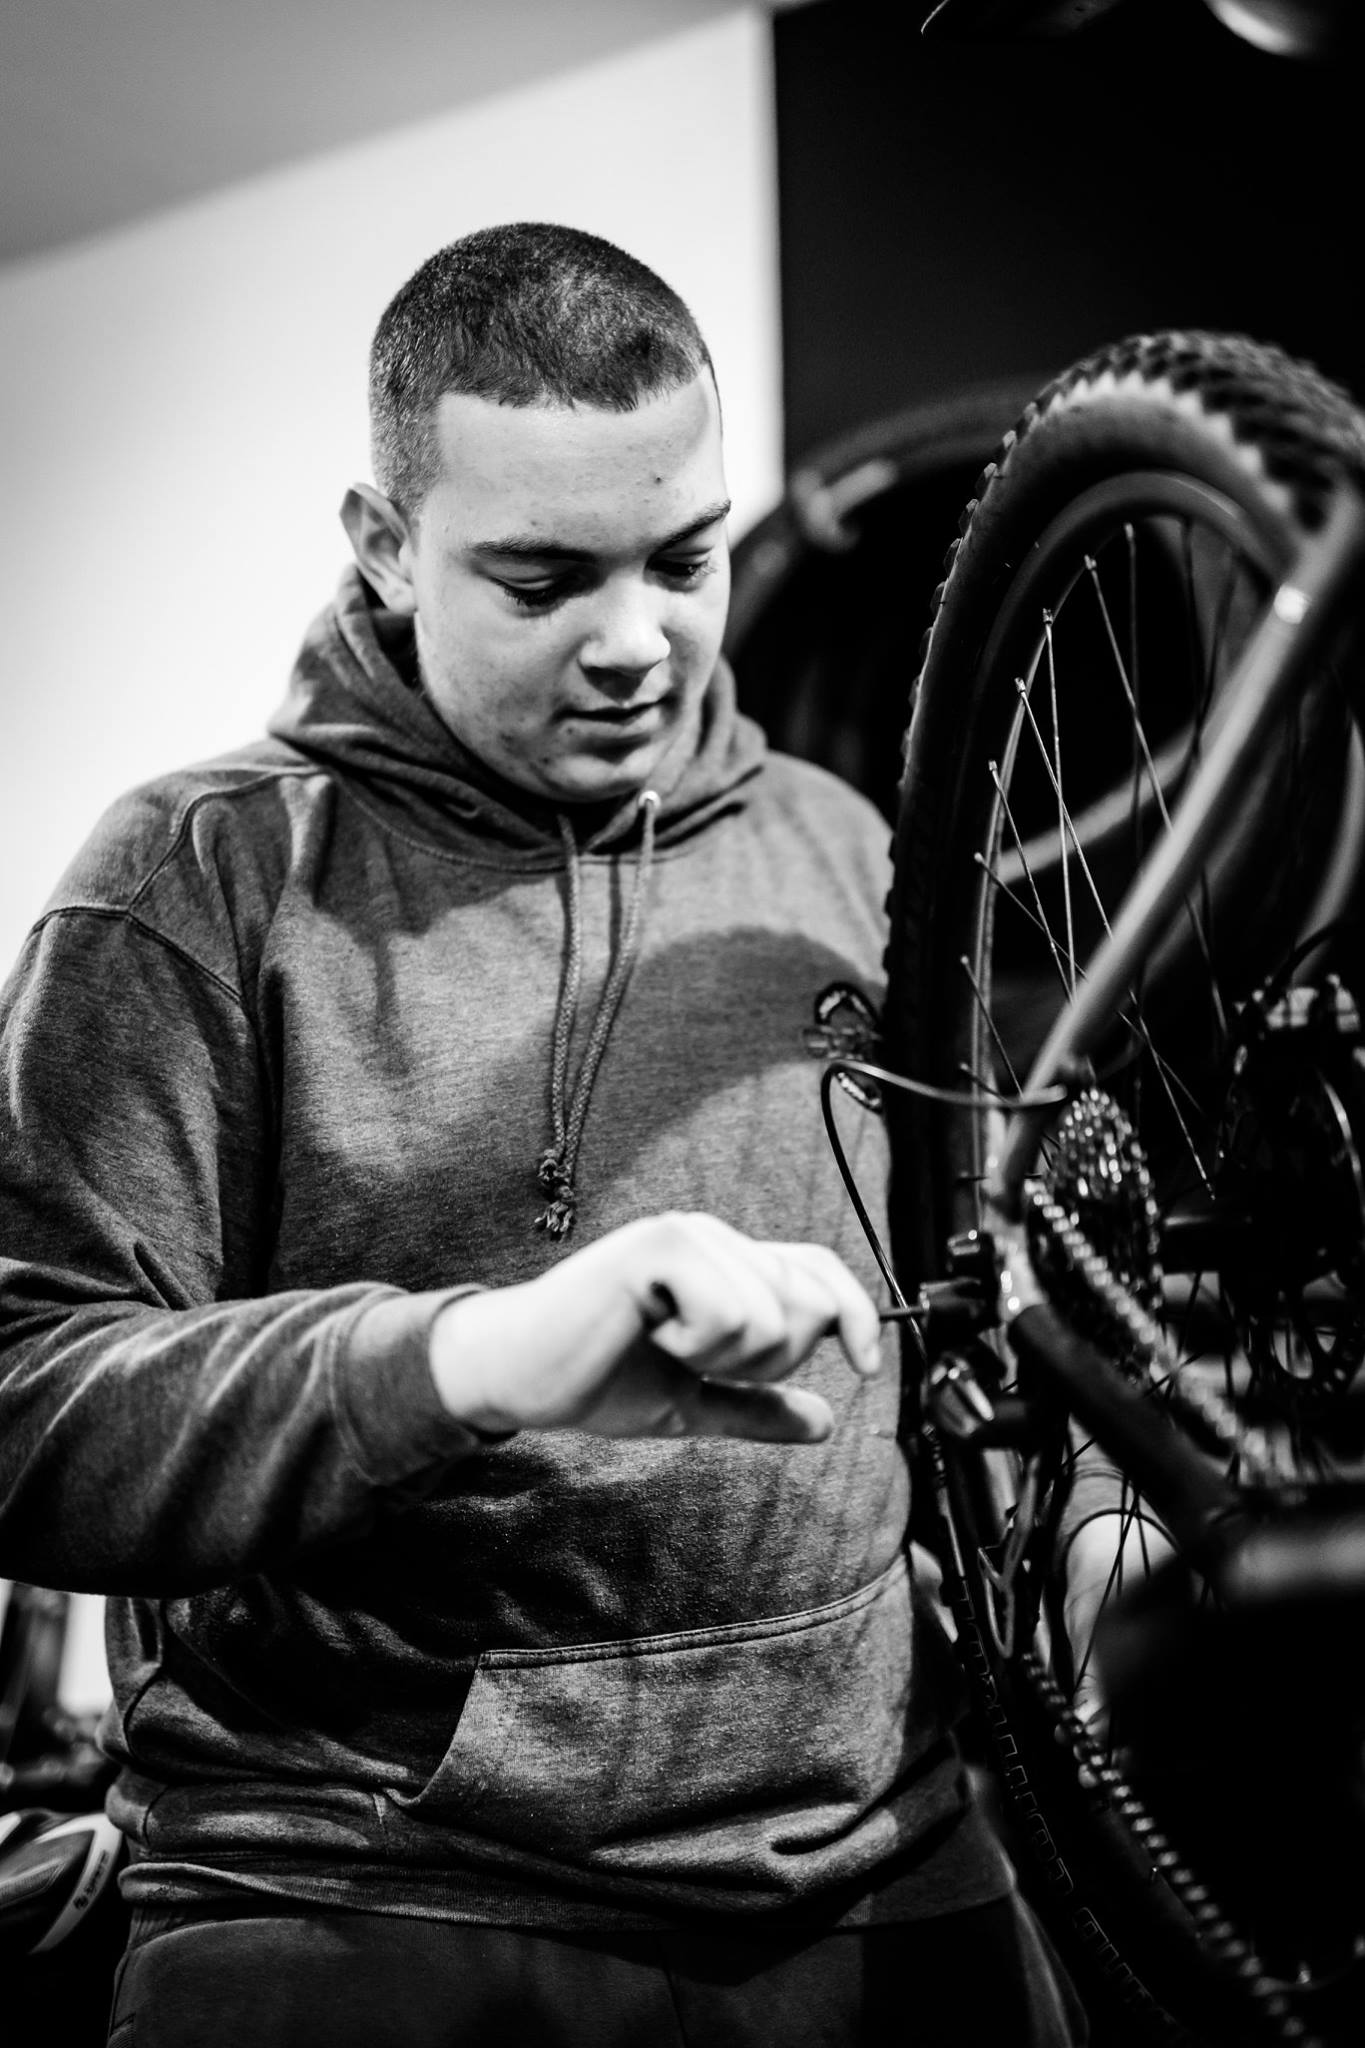 Gear Up Bike shop birmingham